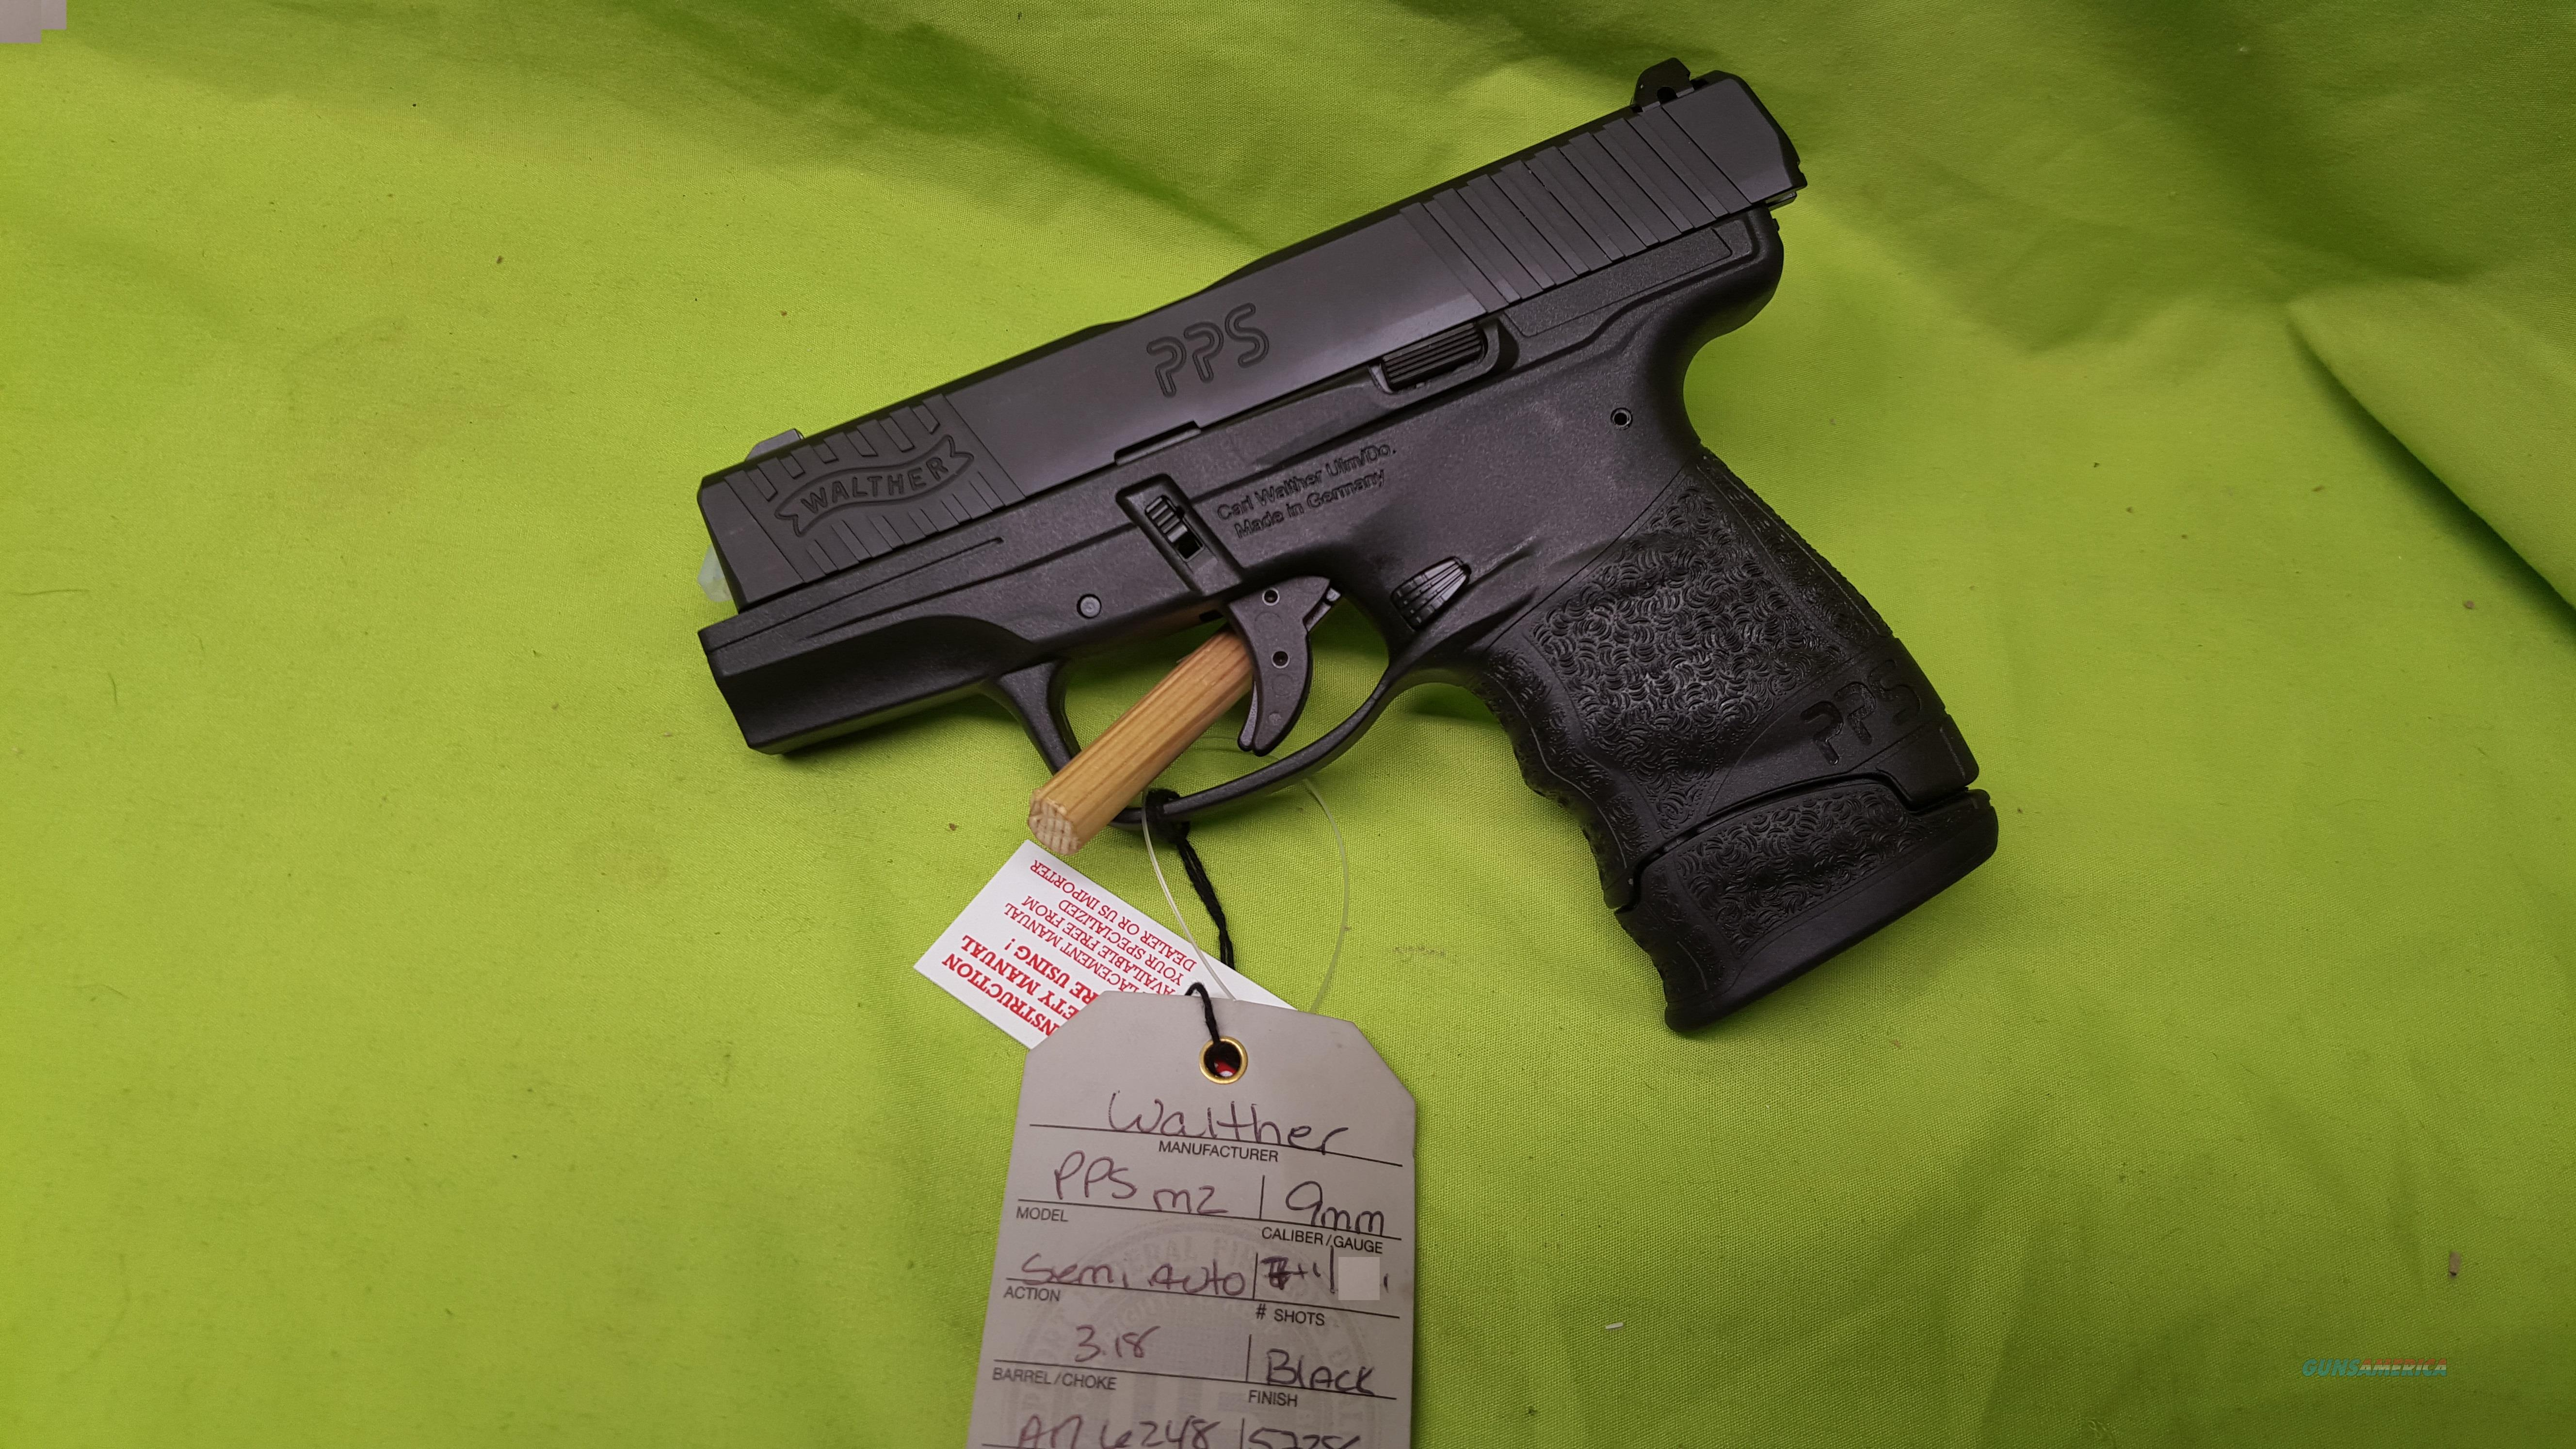 WALTHER PPS M2 9MM 3.2 6/7RD POLICE PISTOL SLIM  Guns > Pistols > Walther Pistols > Post WWII > PPS